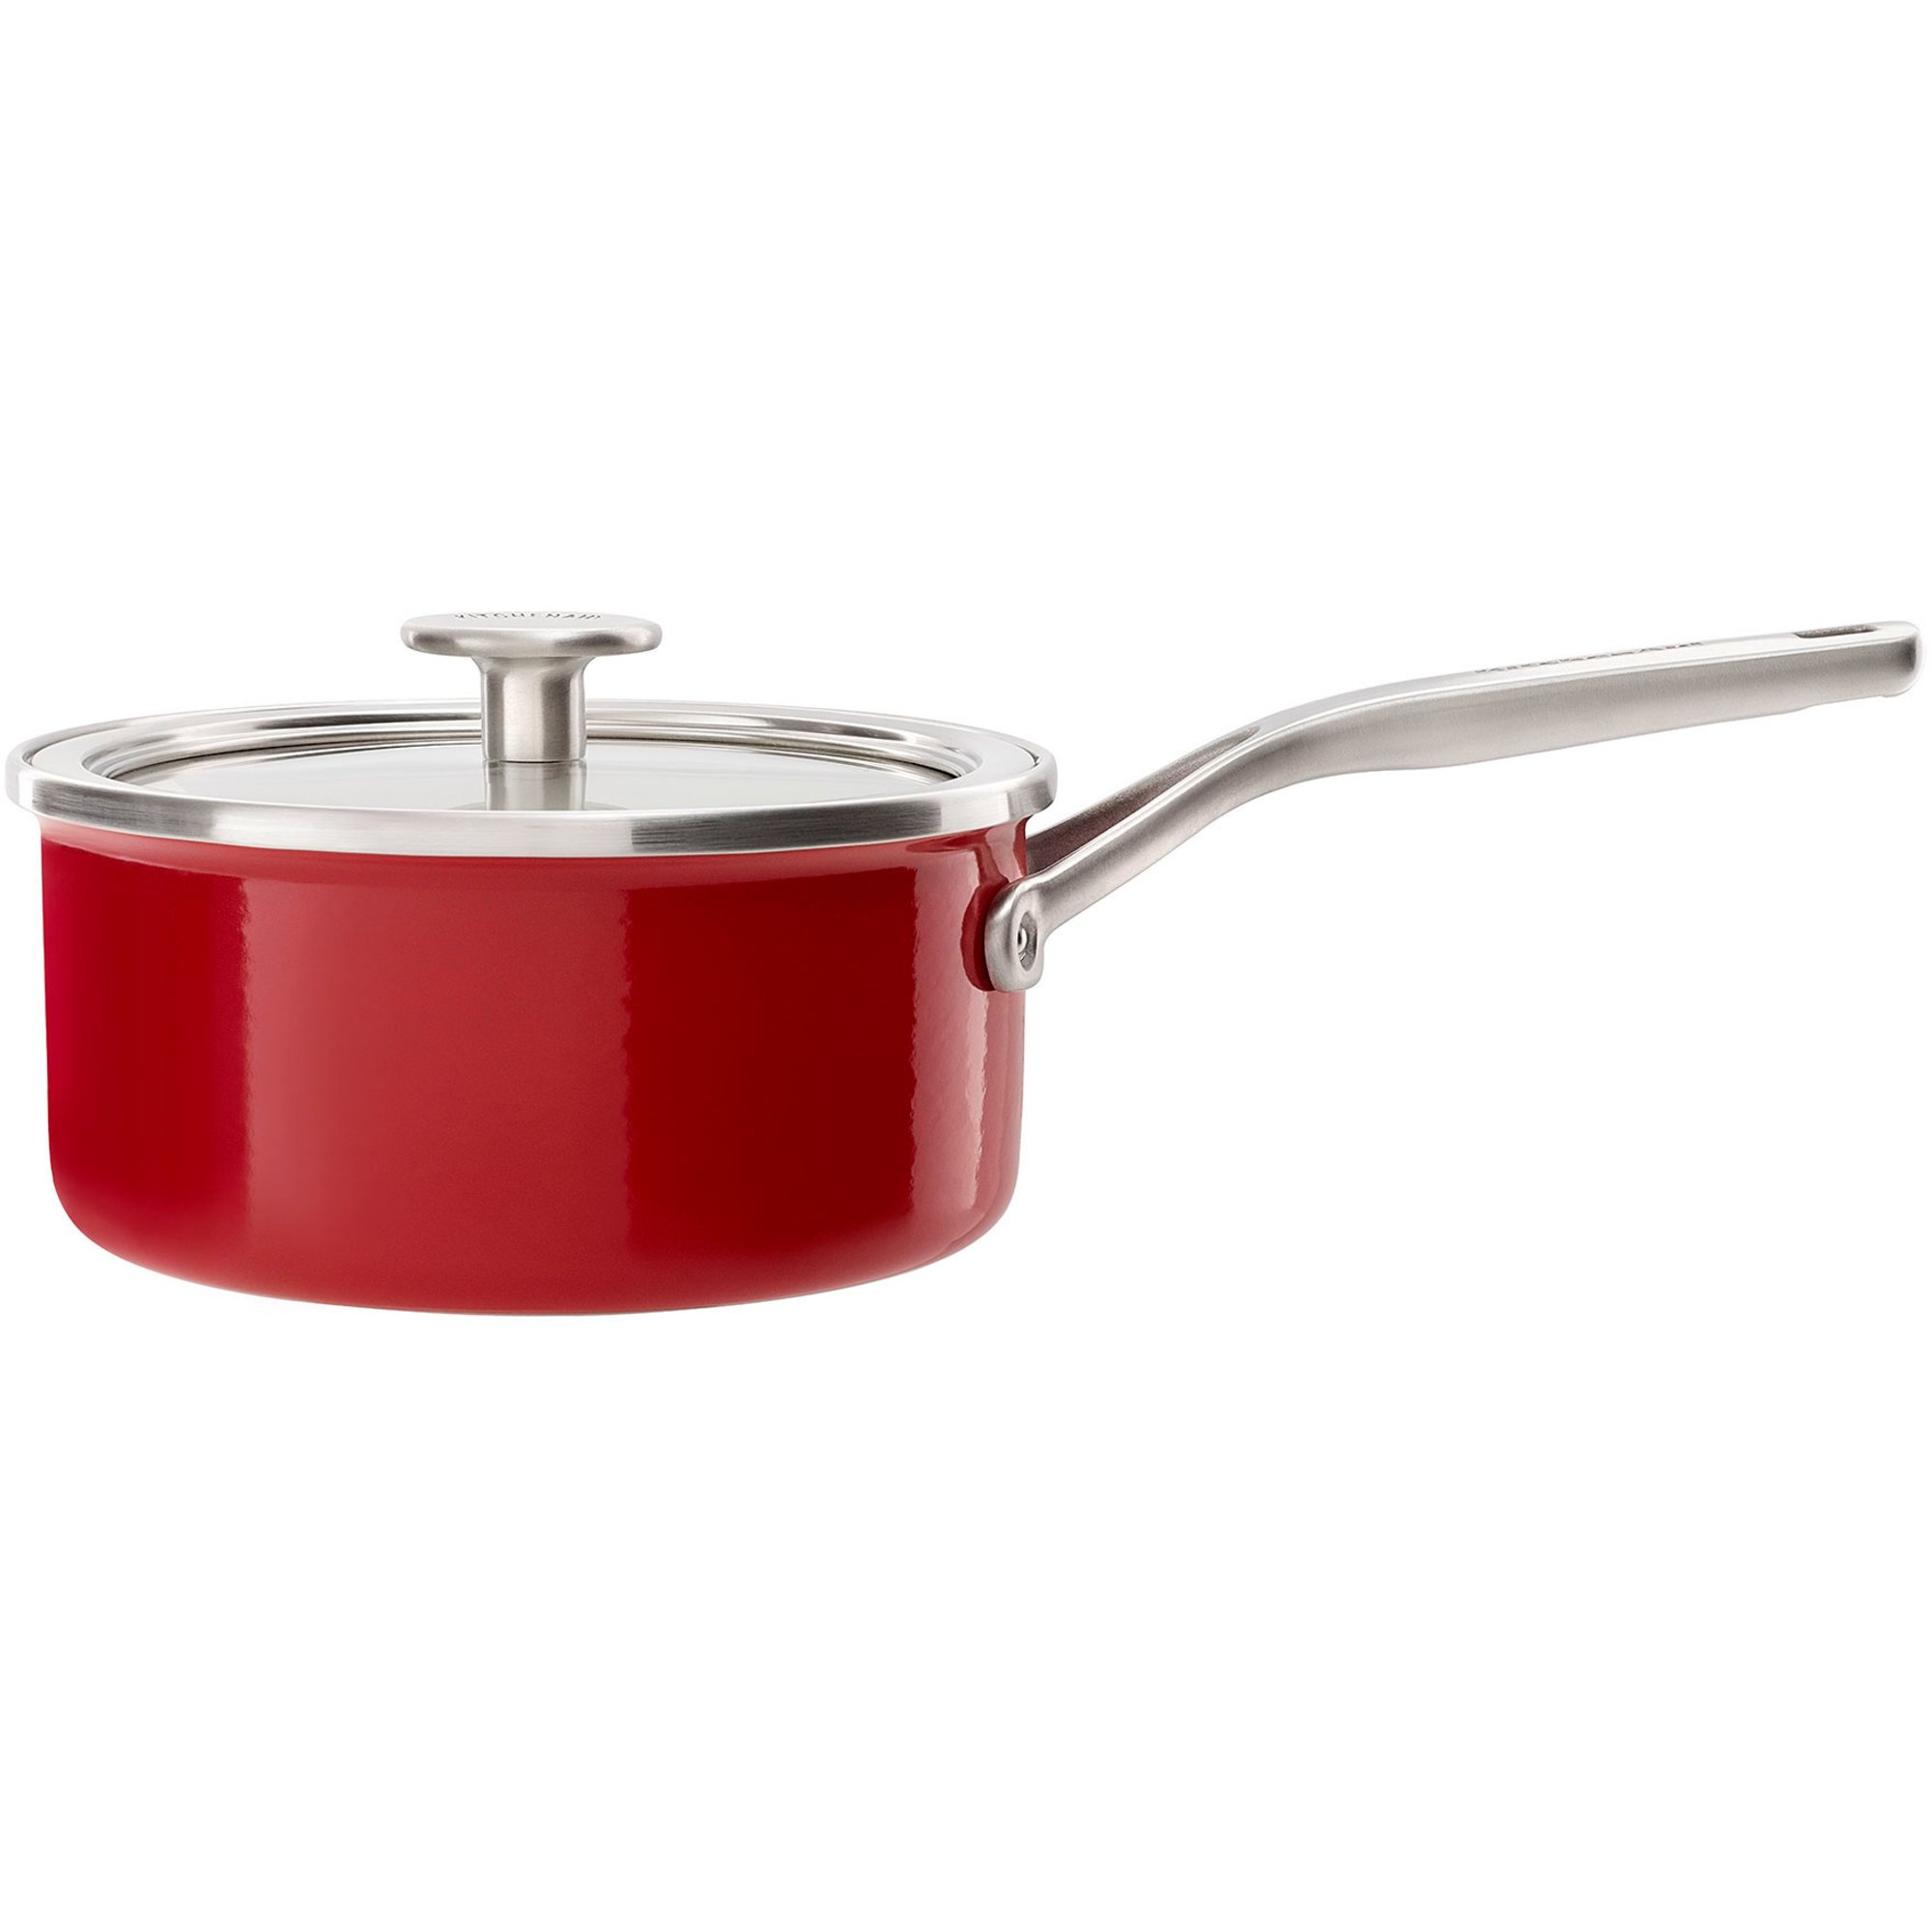 KitchenAid Cookware Collection Kastrull m/lock 18 cm röd